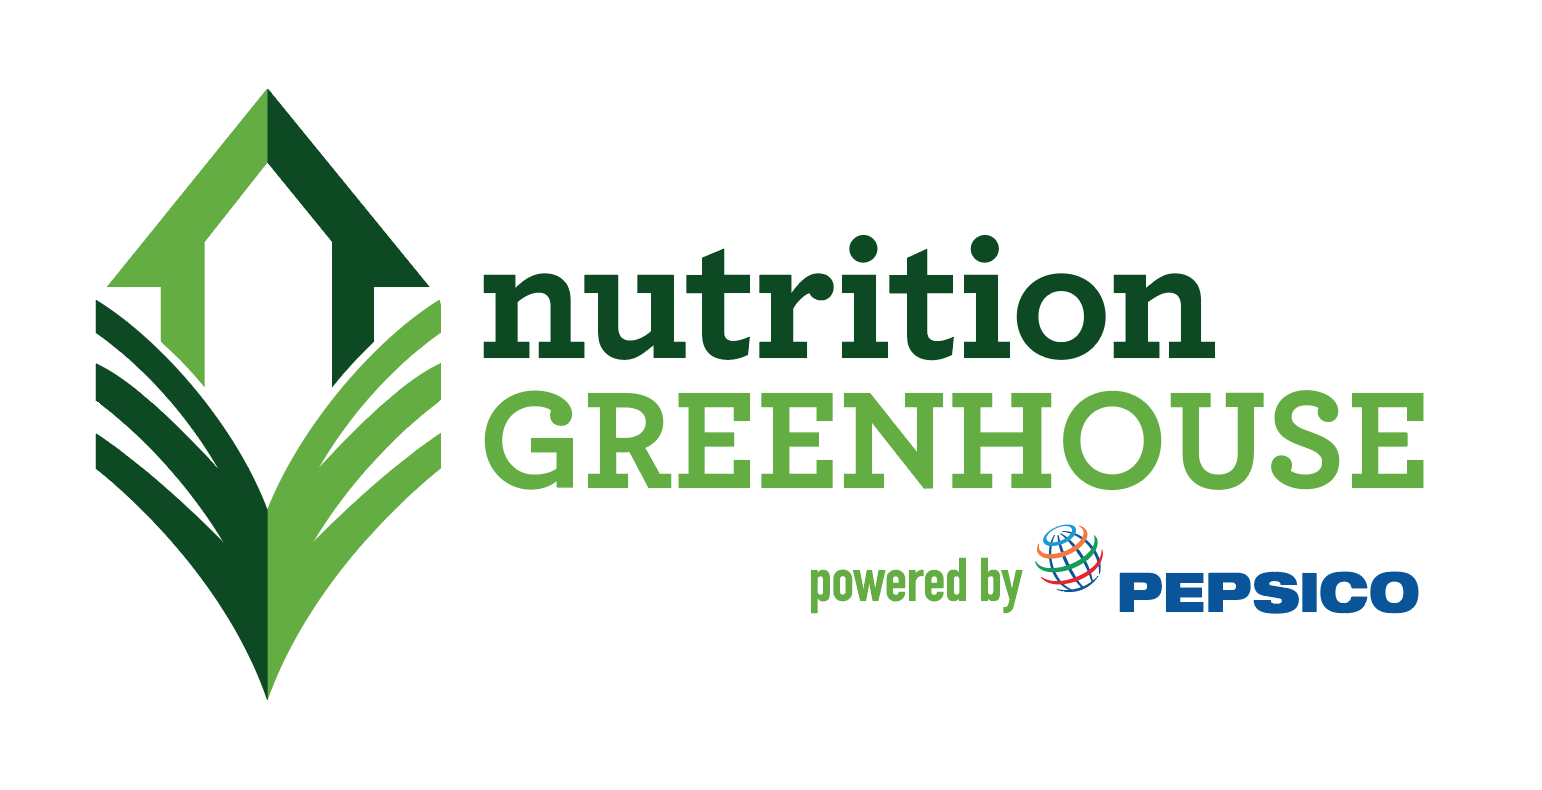 Nutrition Greenhouse